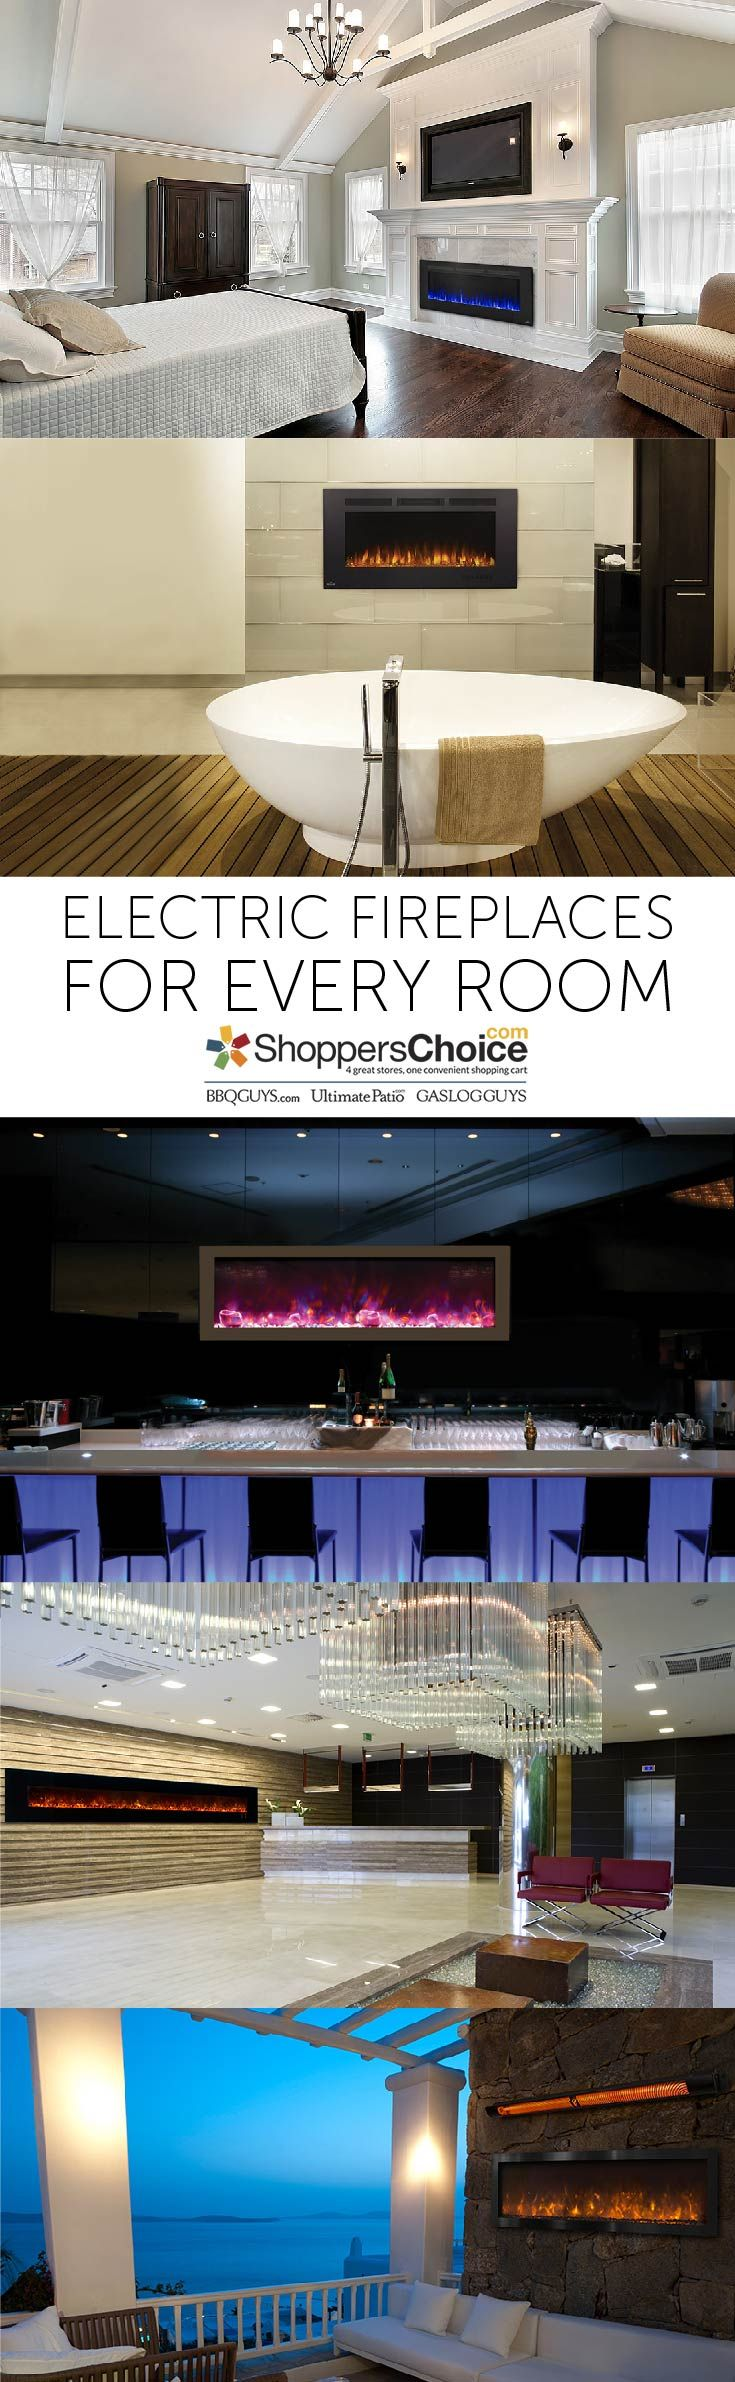 20 best electric fireplaces images on pinterest electric